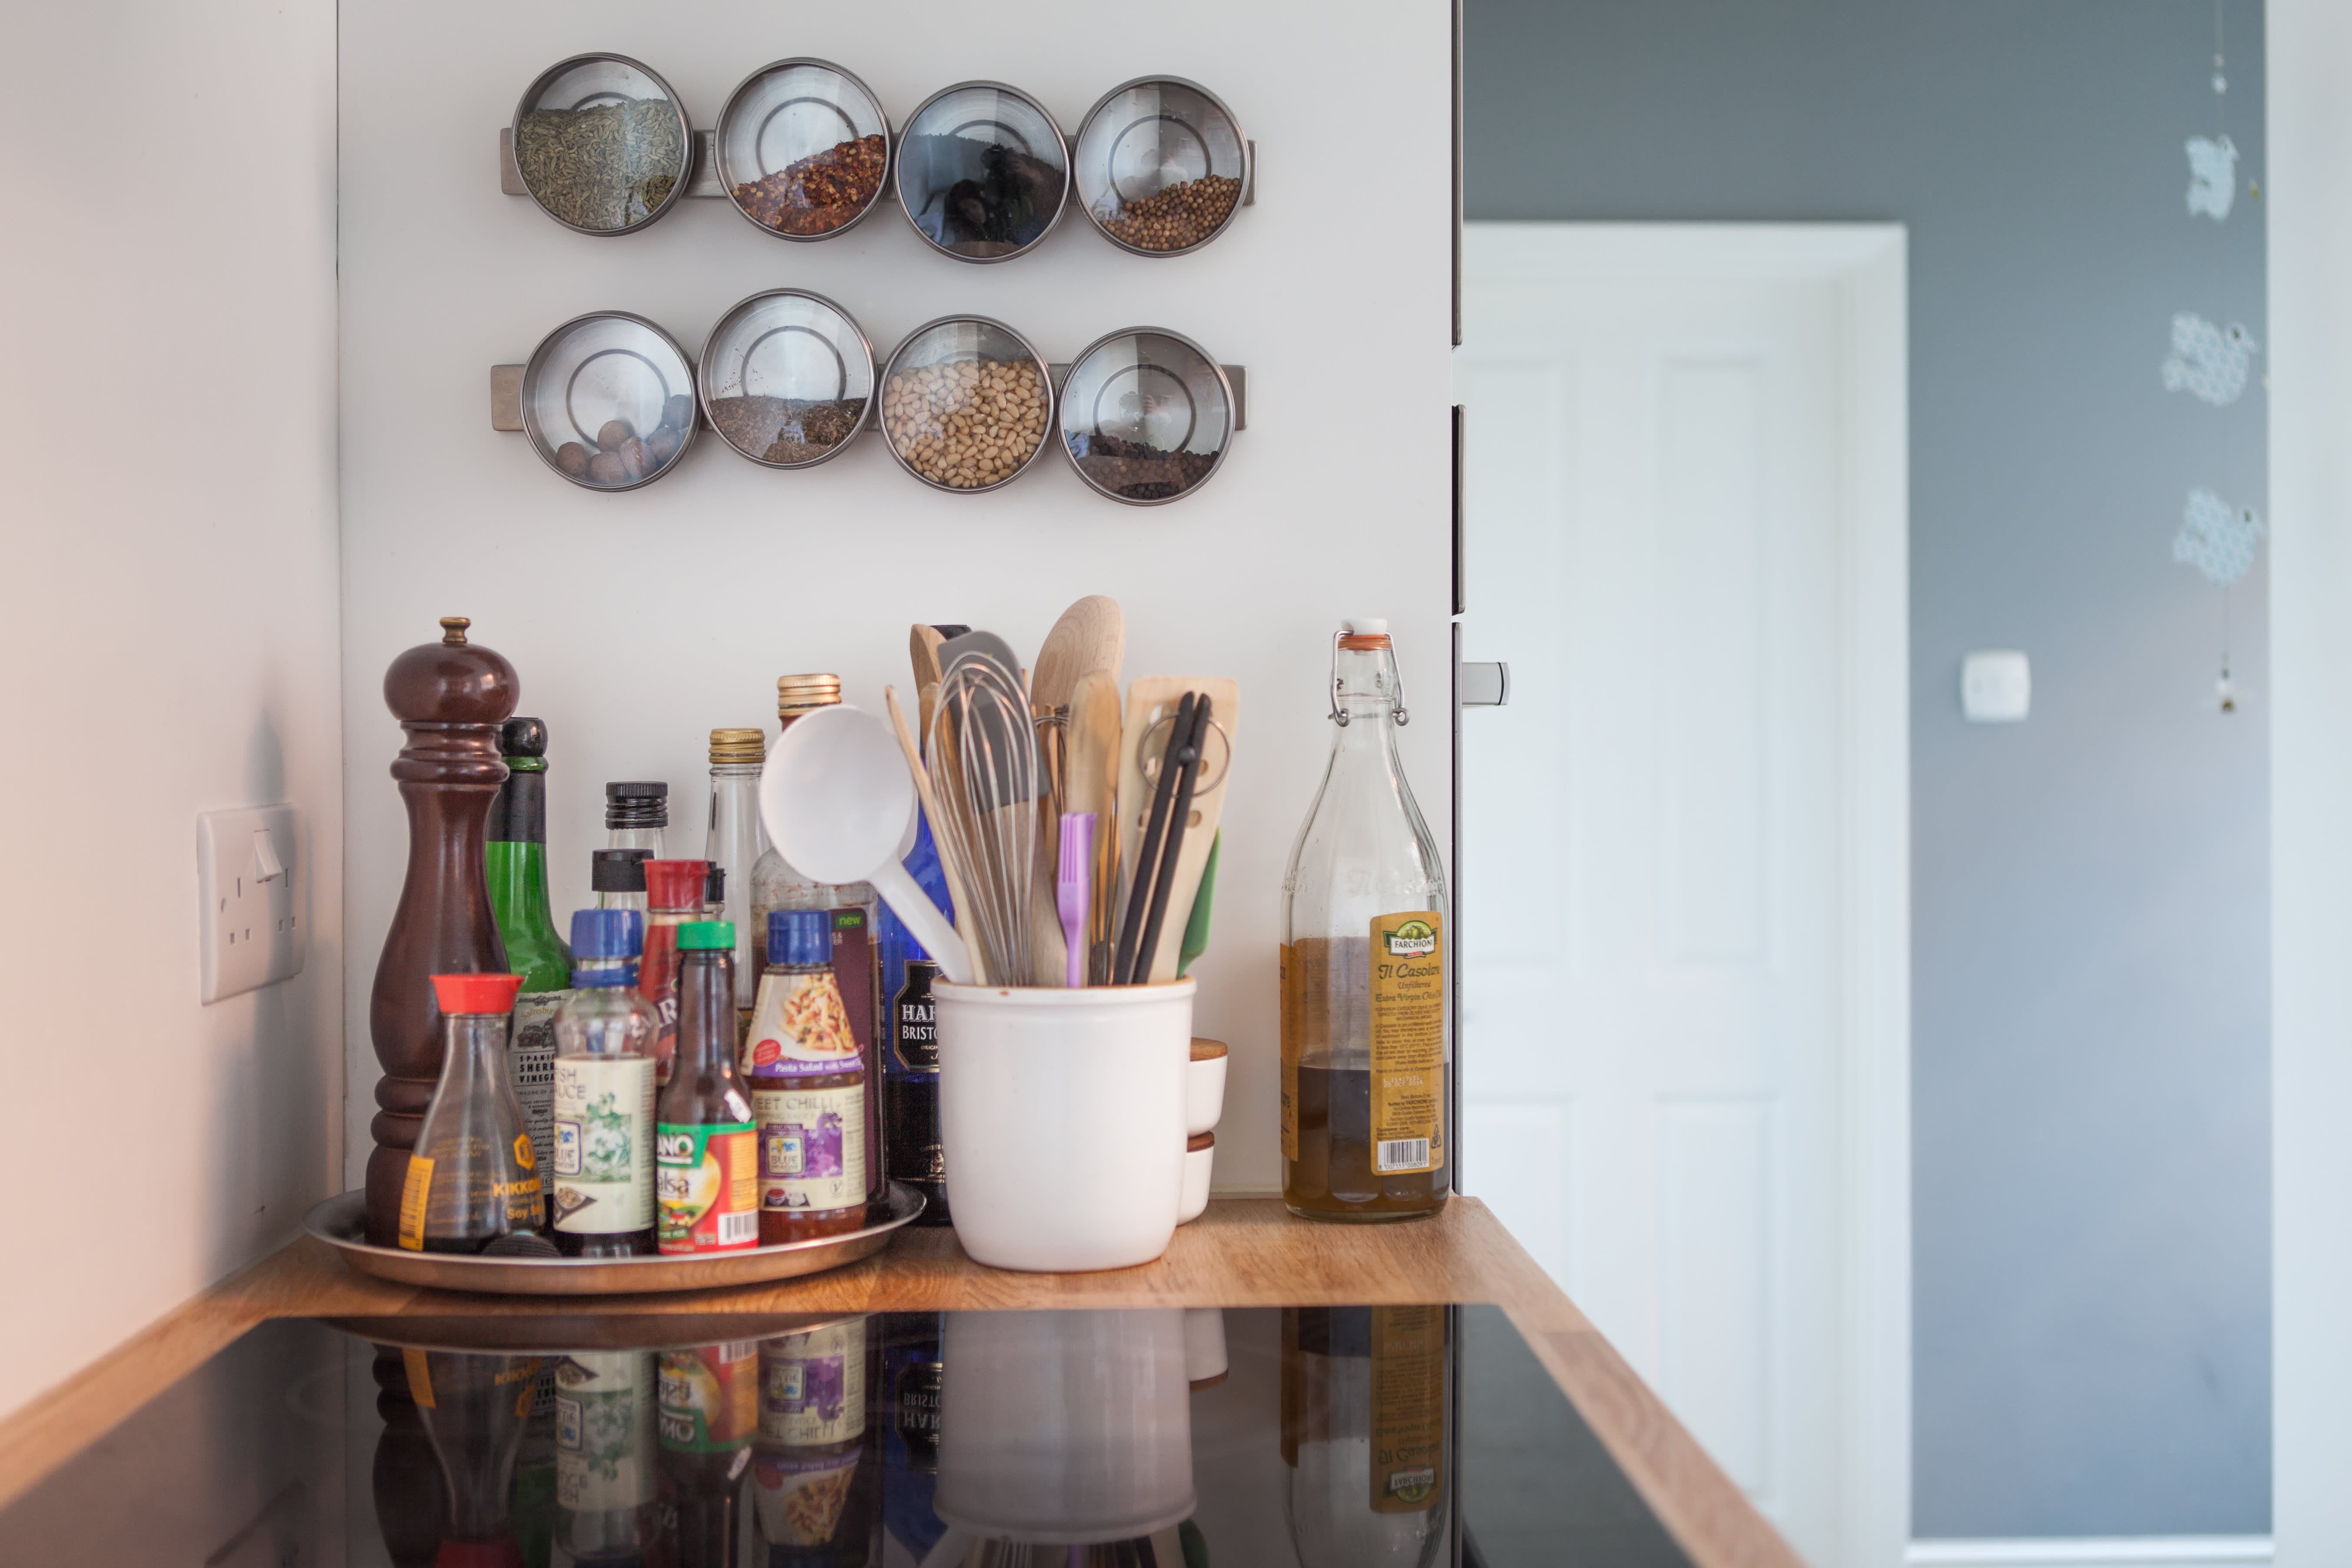 15 Ingenious Ways to Create a More Organized Kitchen: gallery image 8